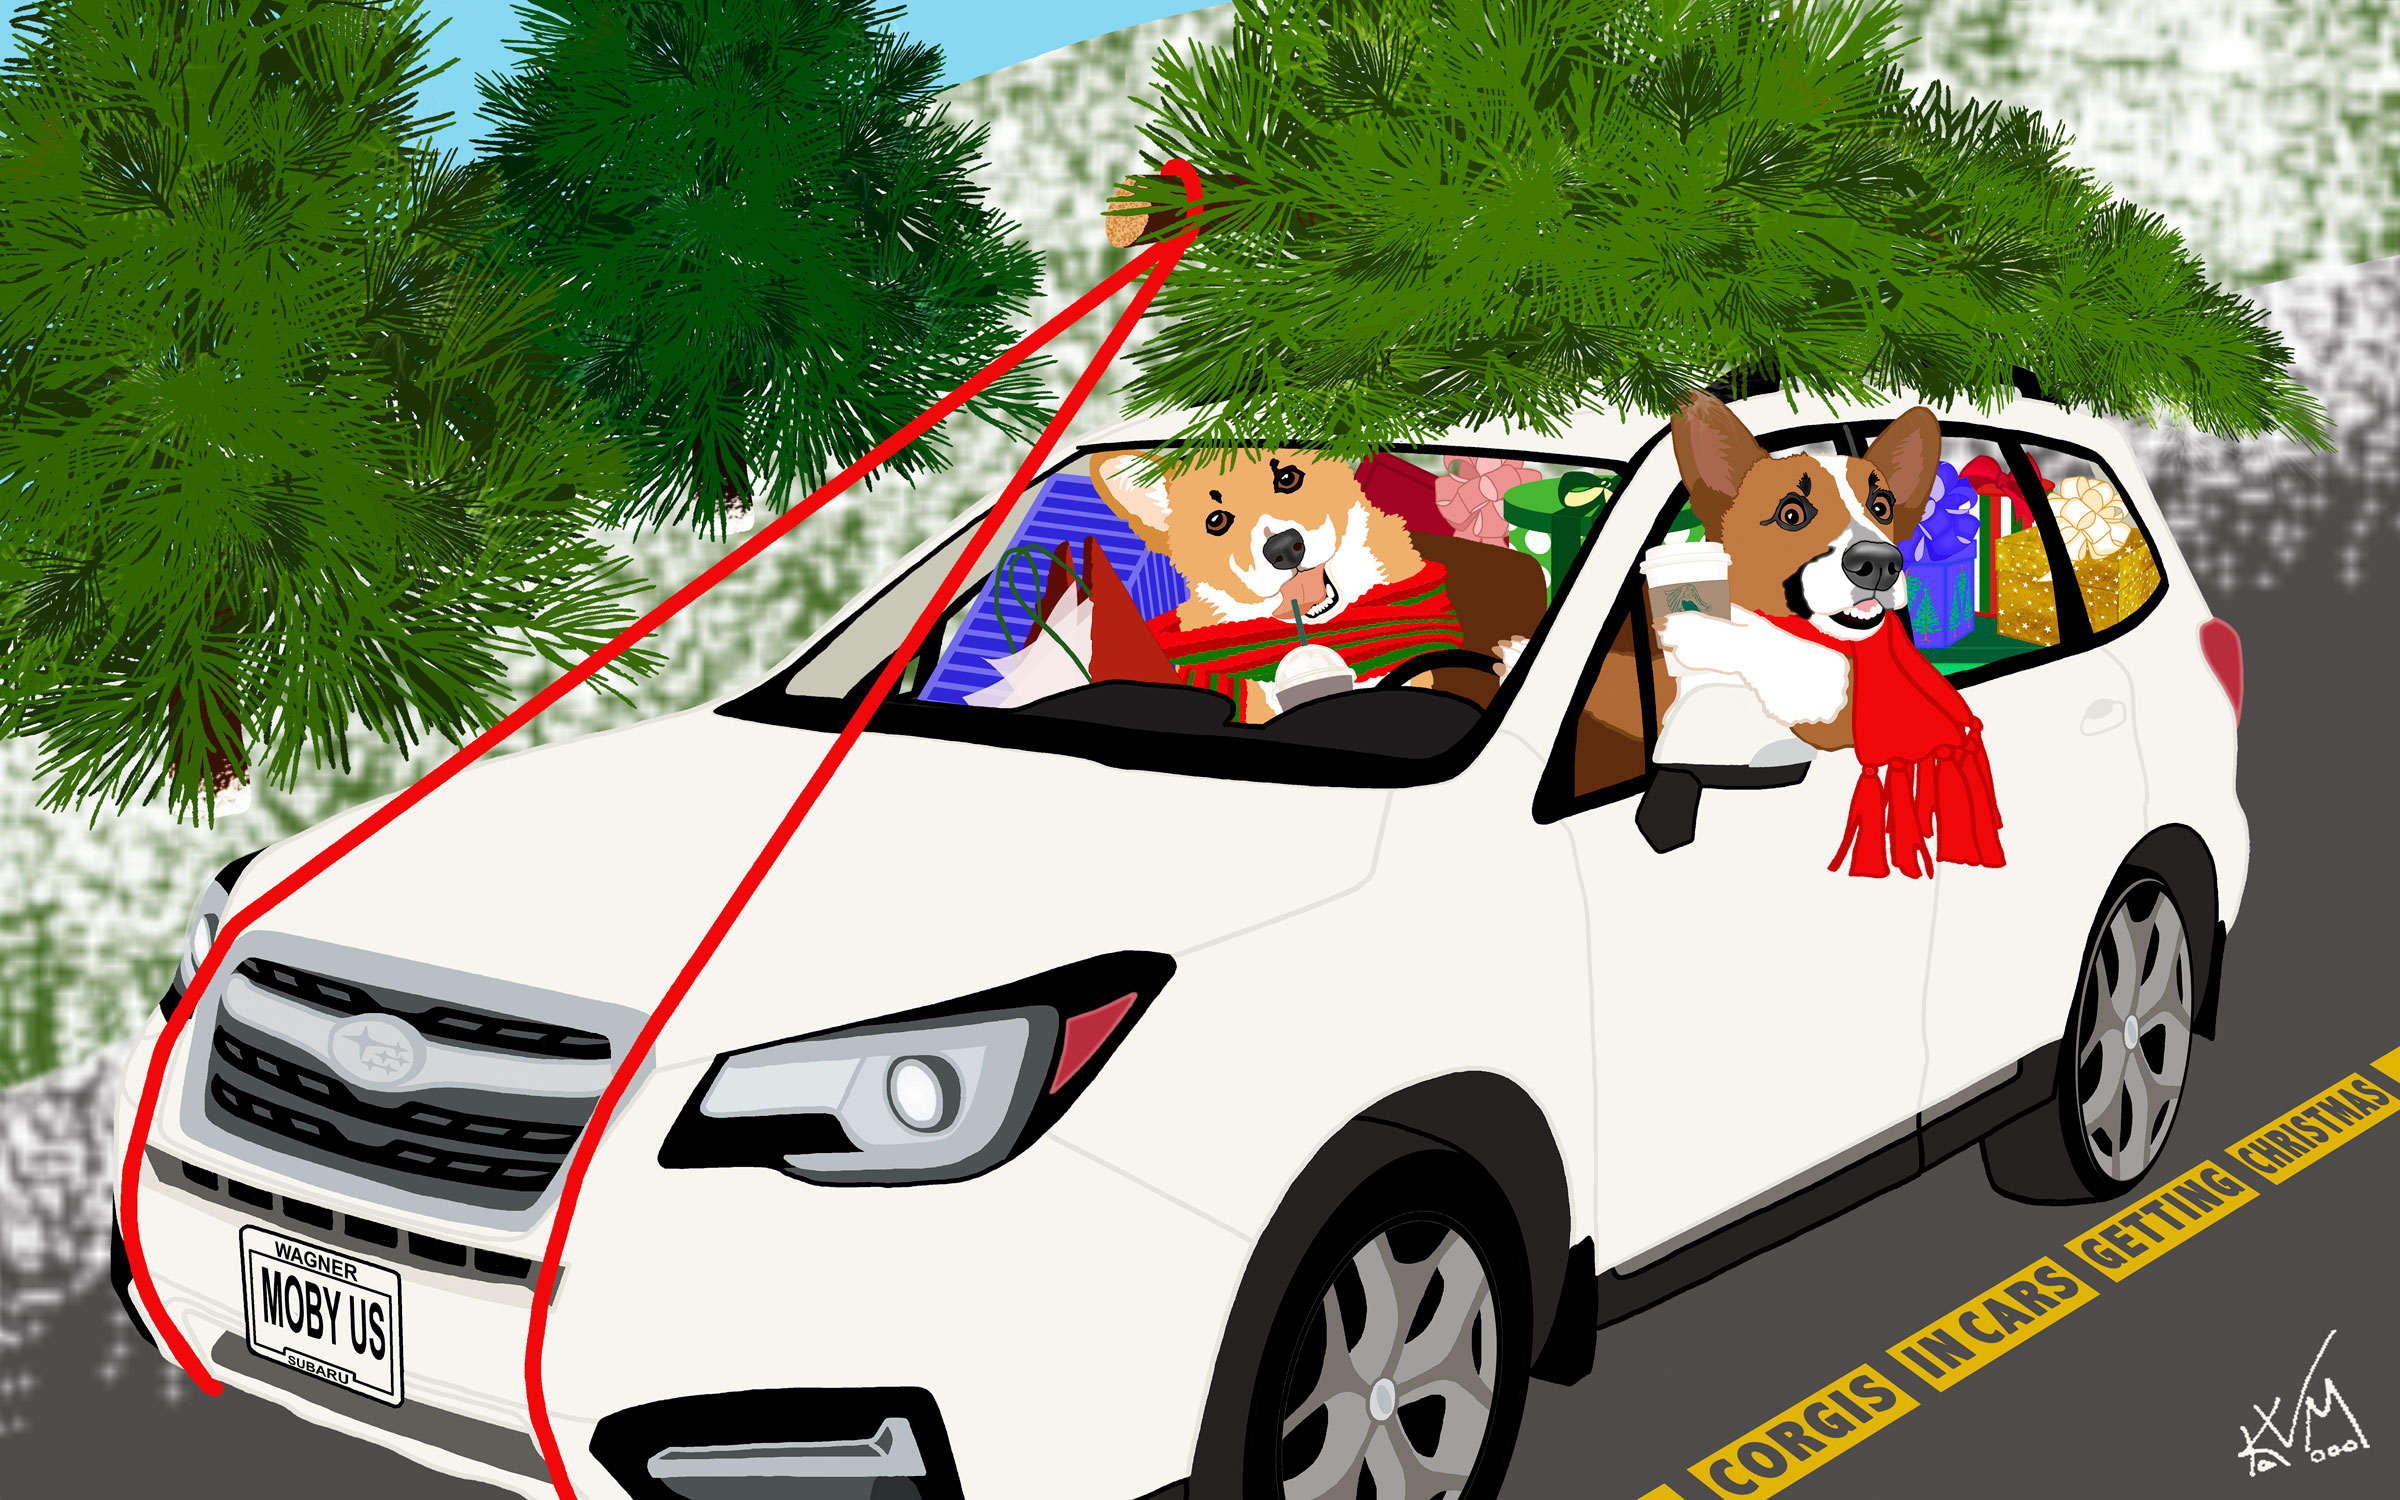 Corgis in Cars Getting Christmas (280)